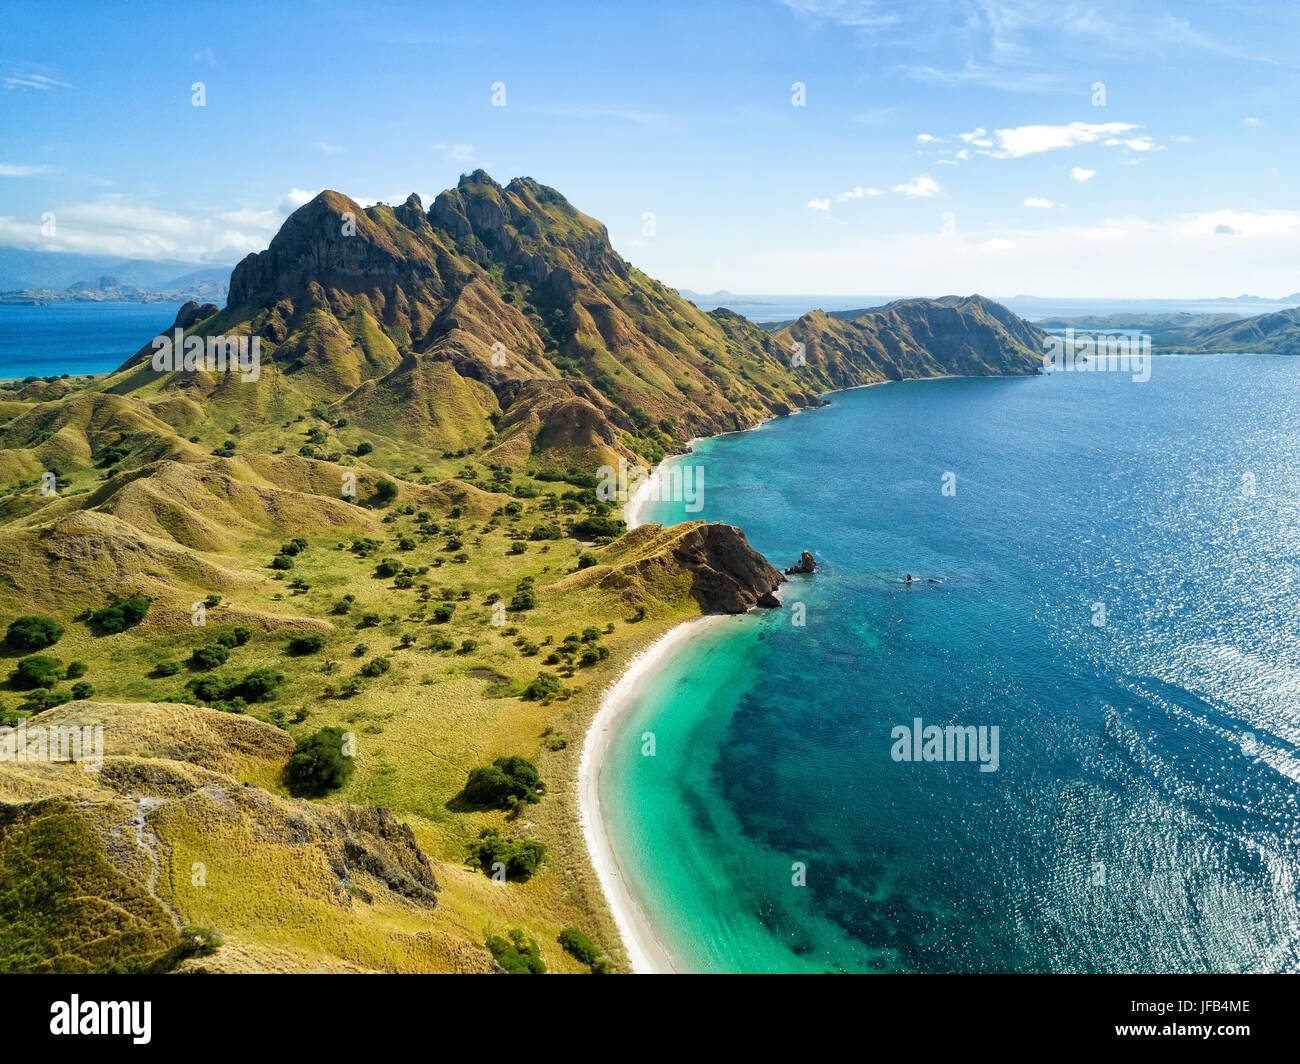 Aerial view of the northern part of Pulau Padar island in between Komodo and Rinca Islands near Labuan Bajo in Indonesia. - Stock Image